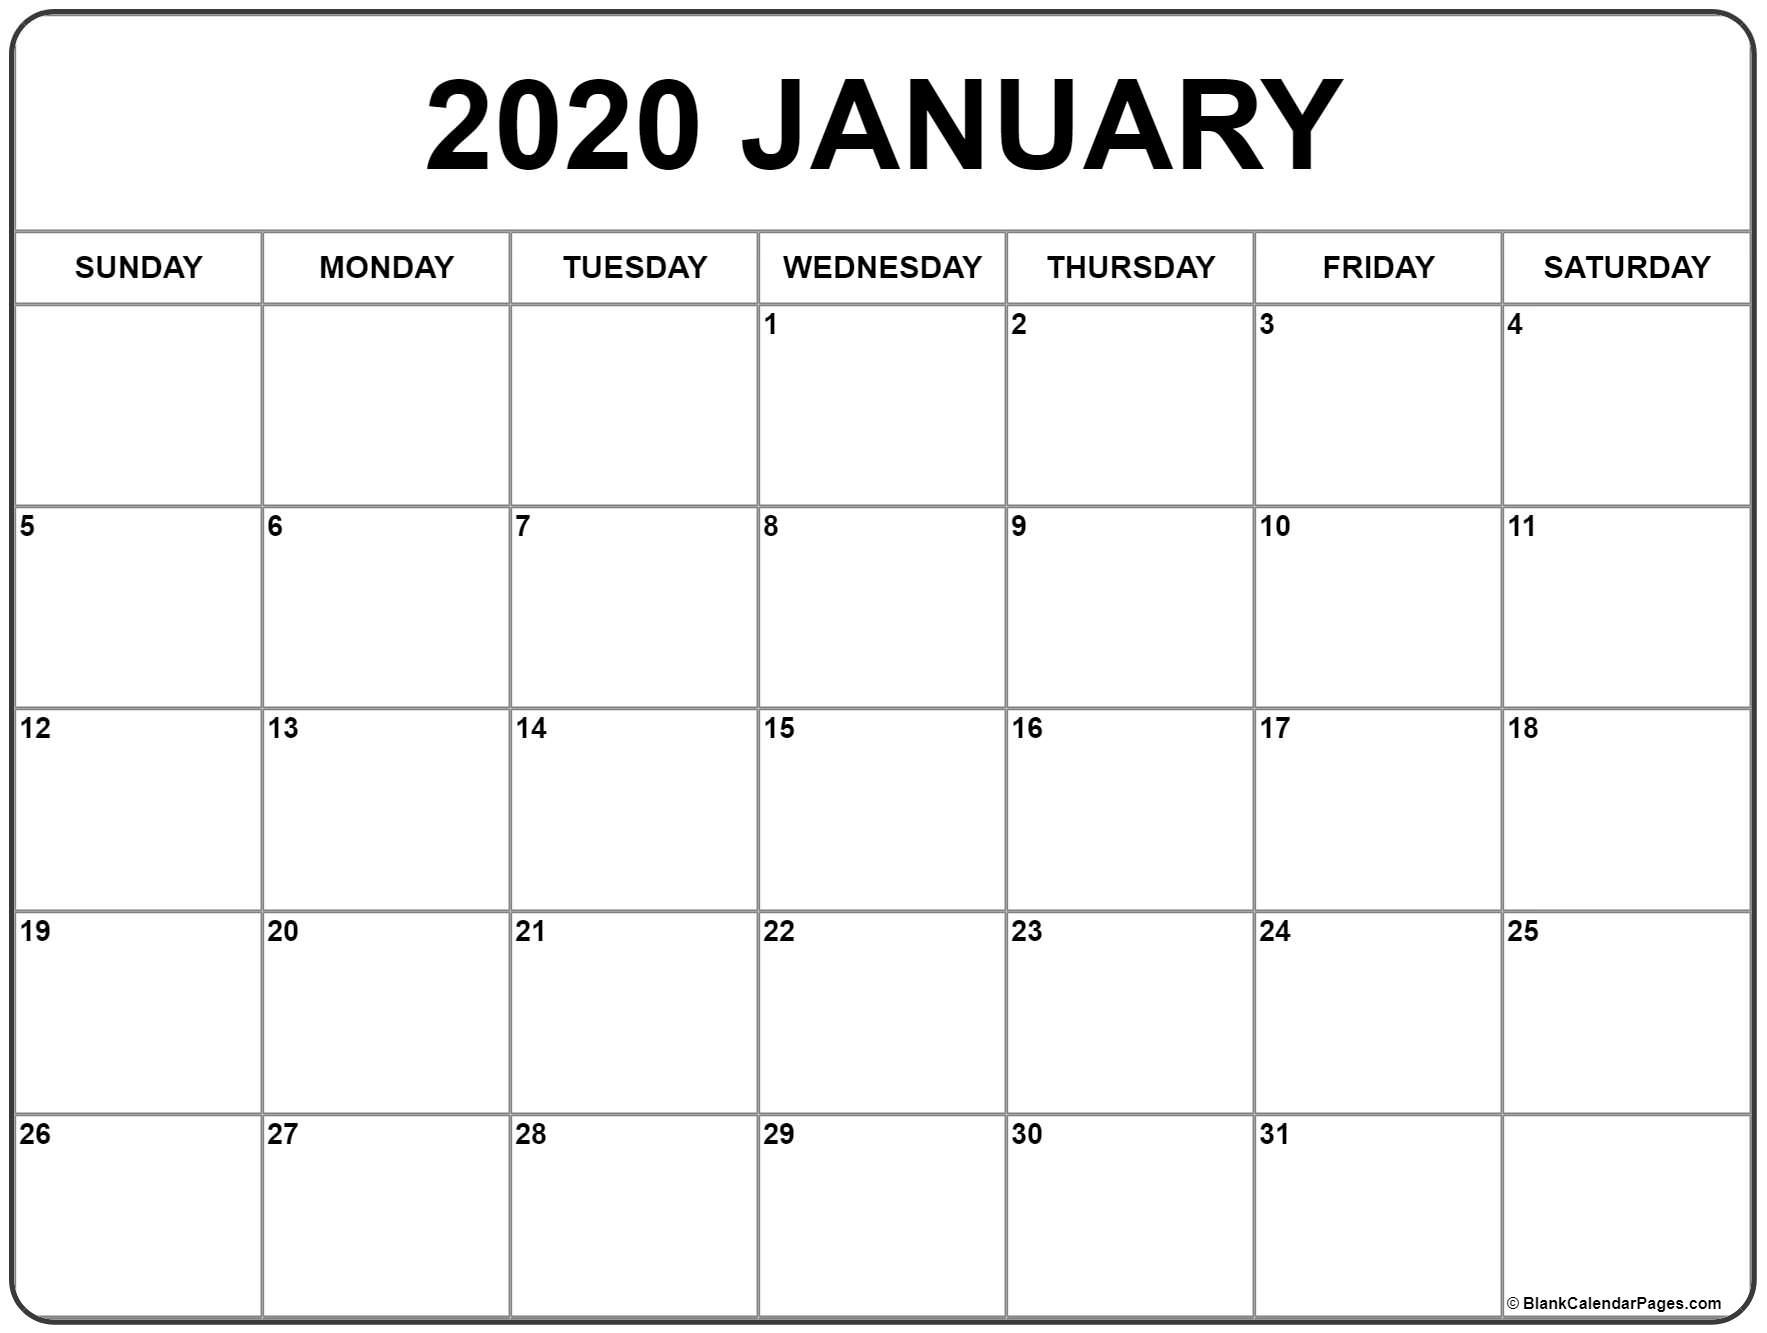 January 2020 Calendar | Free Printable Monthly Calendars throughout 2020 Imom Free Calendars To Print